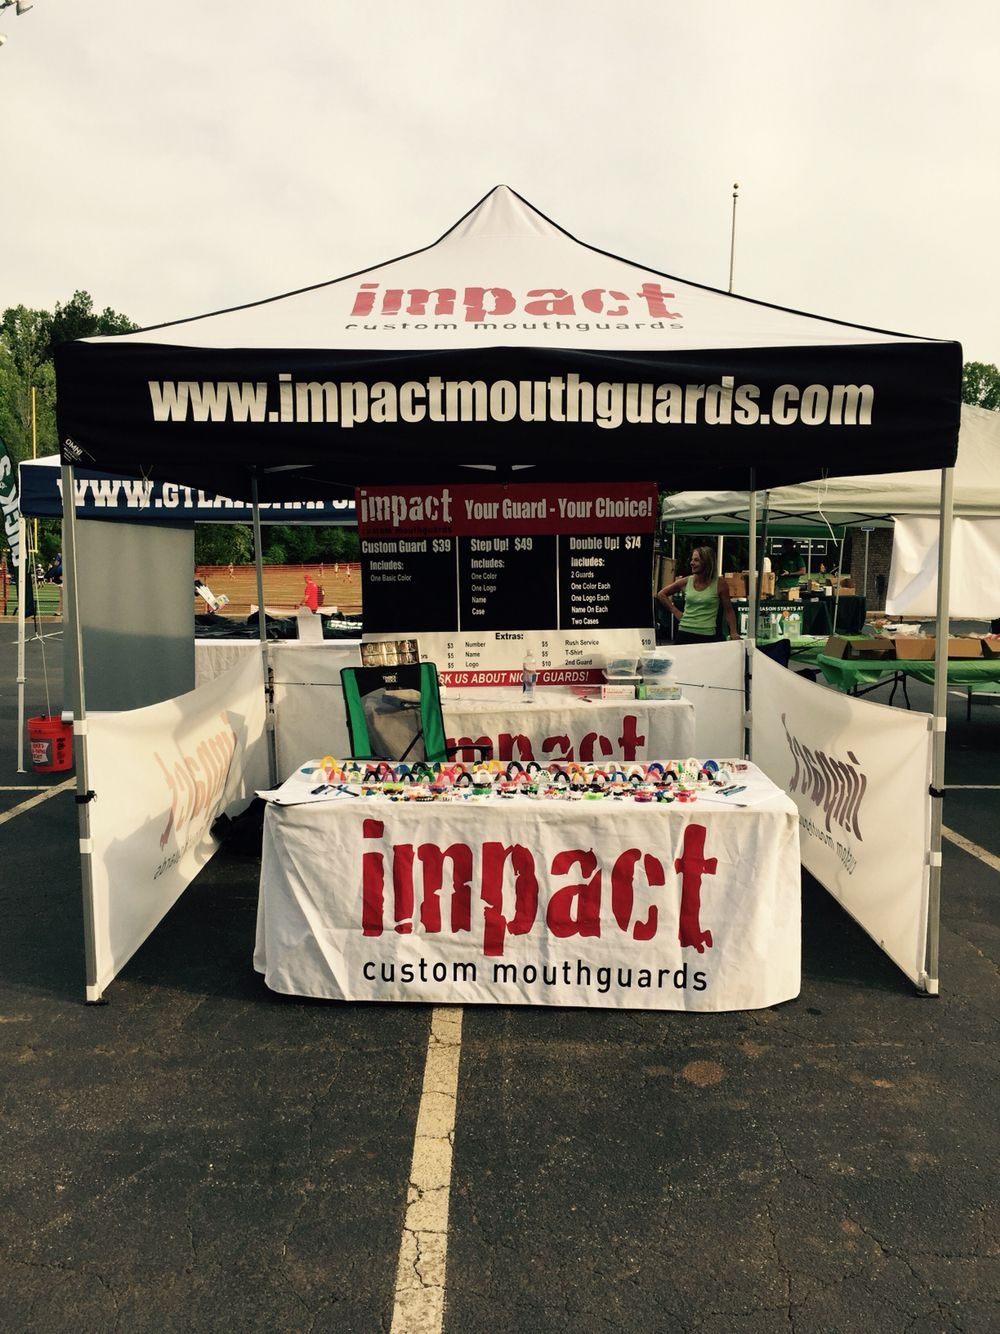 It's tournament season! Get your guard at an event near